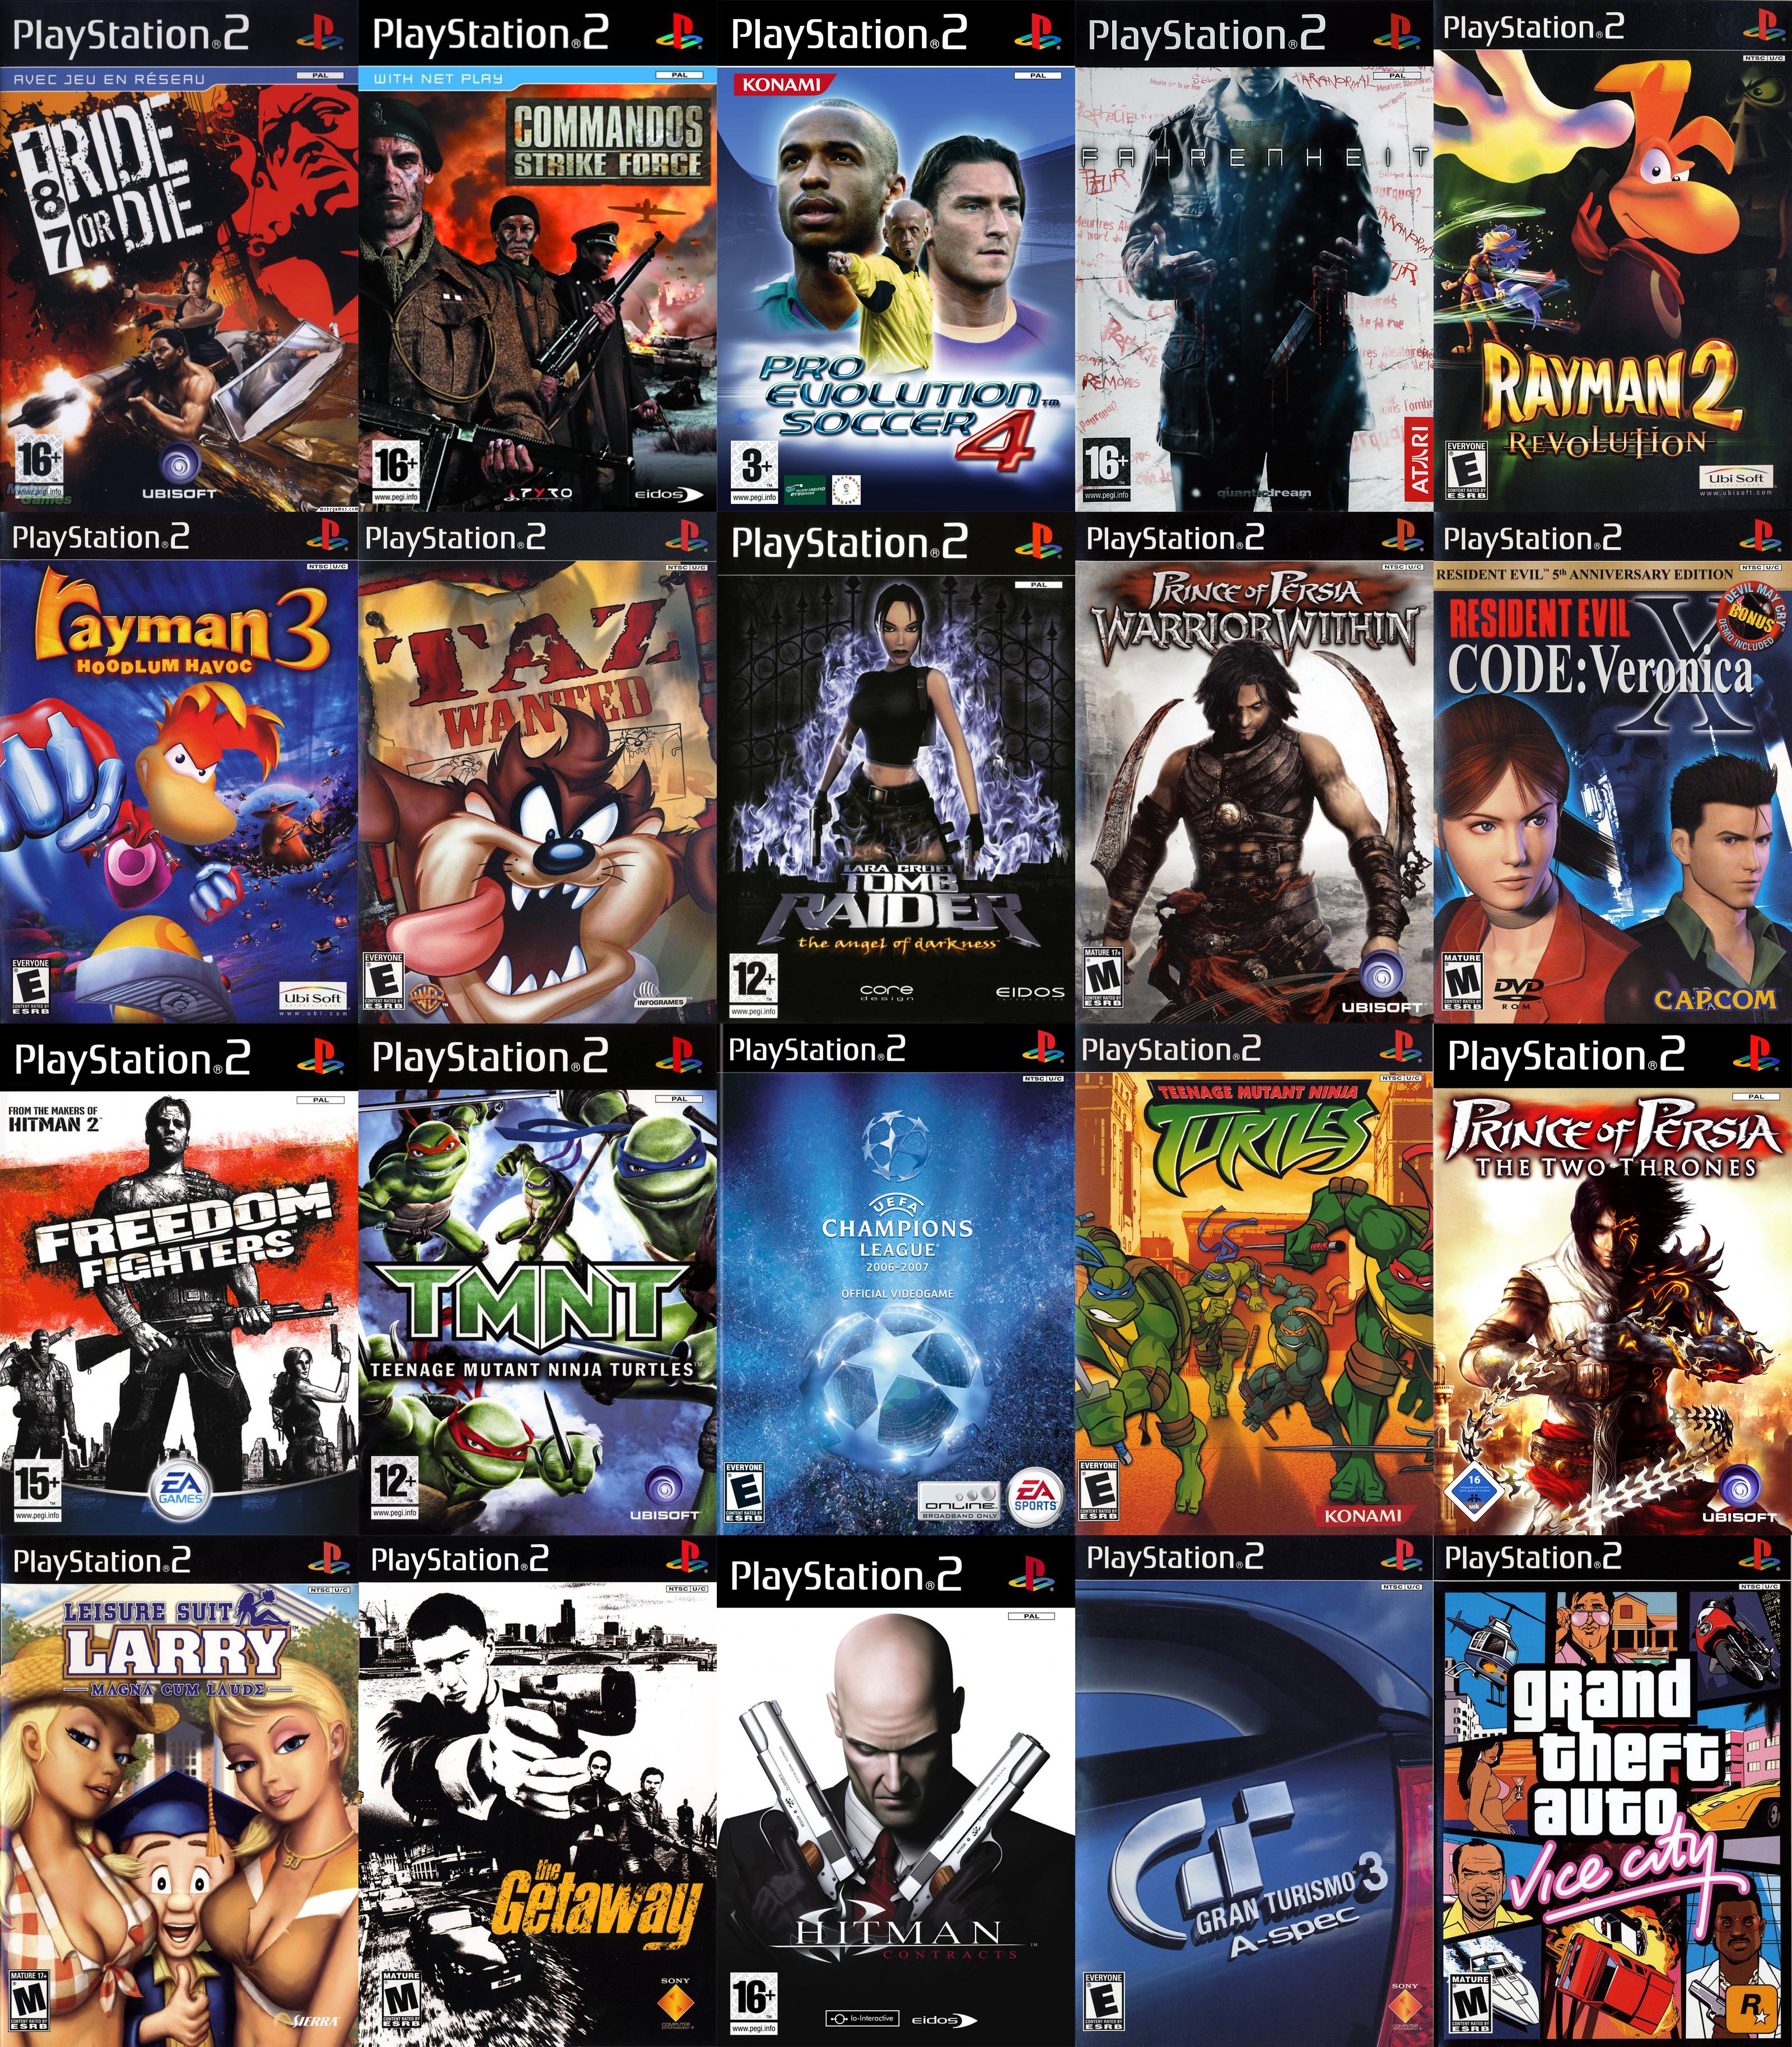 playstation 2 latest games